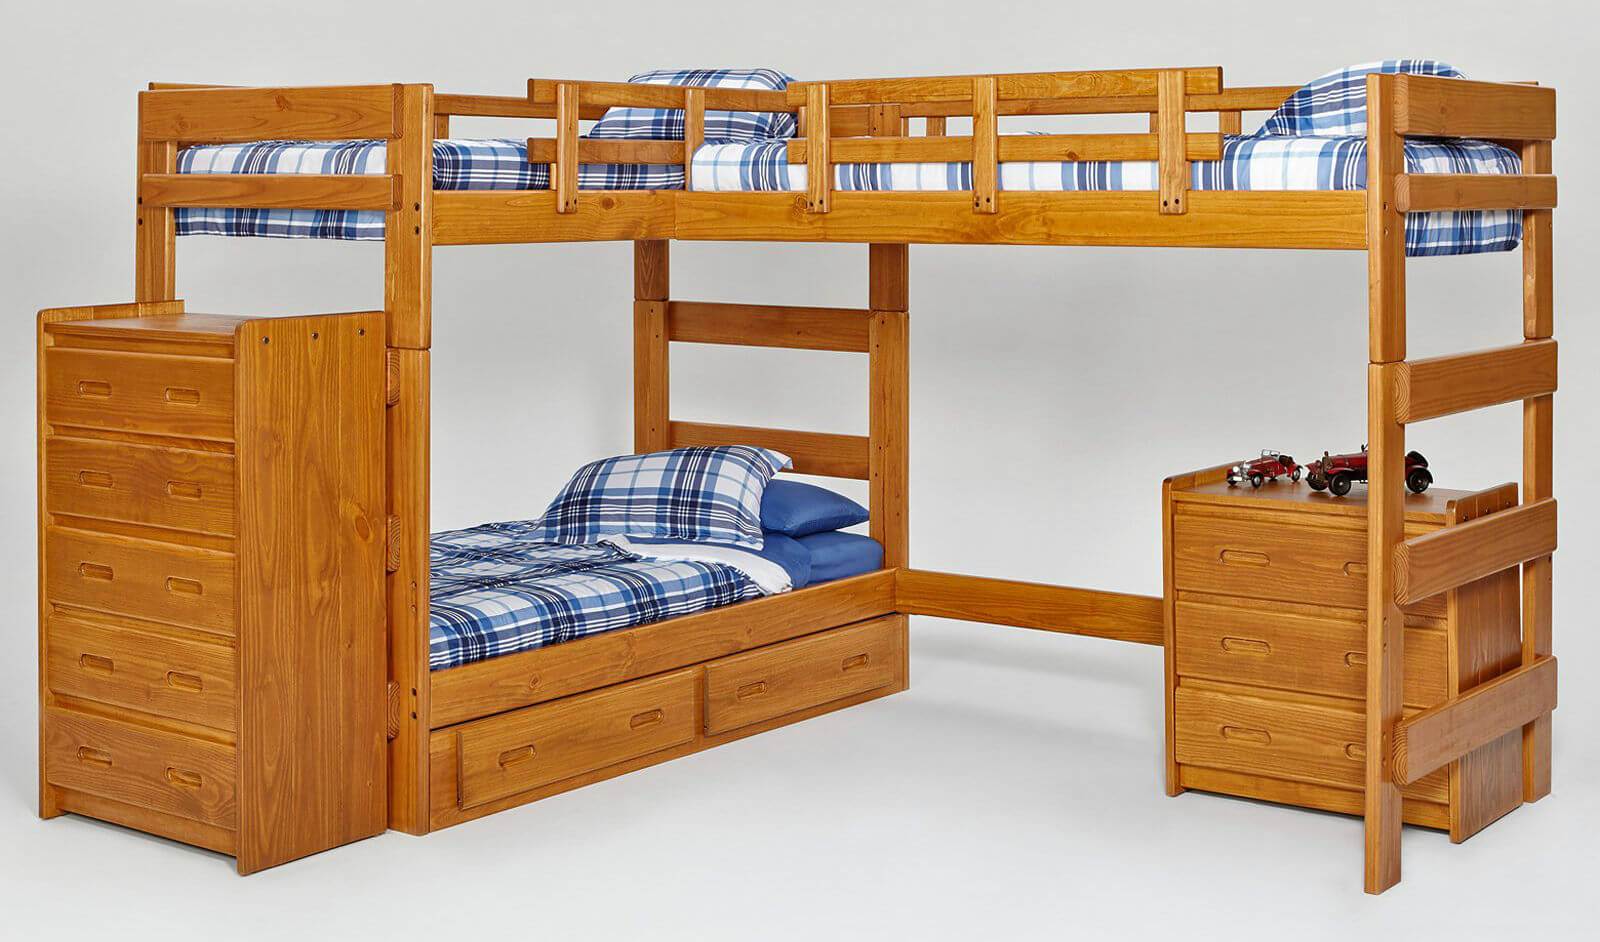 3 Bunk Bed Solution